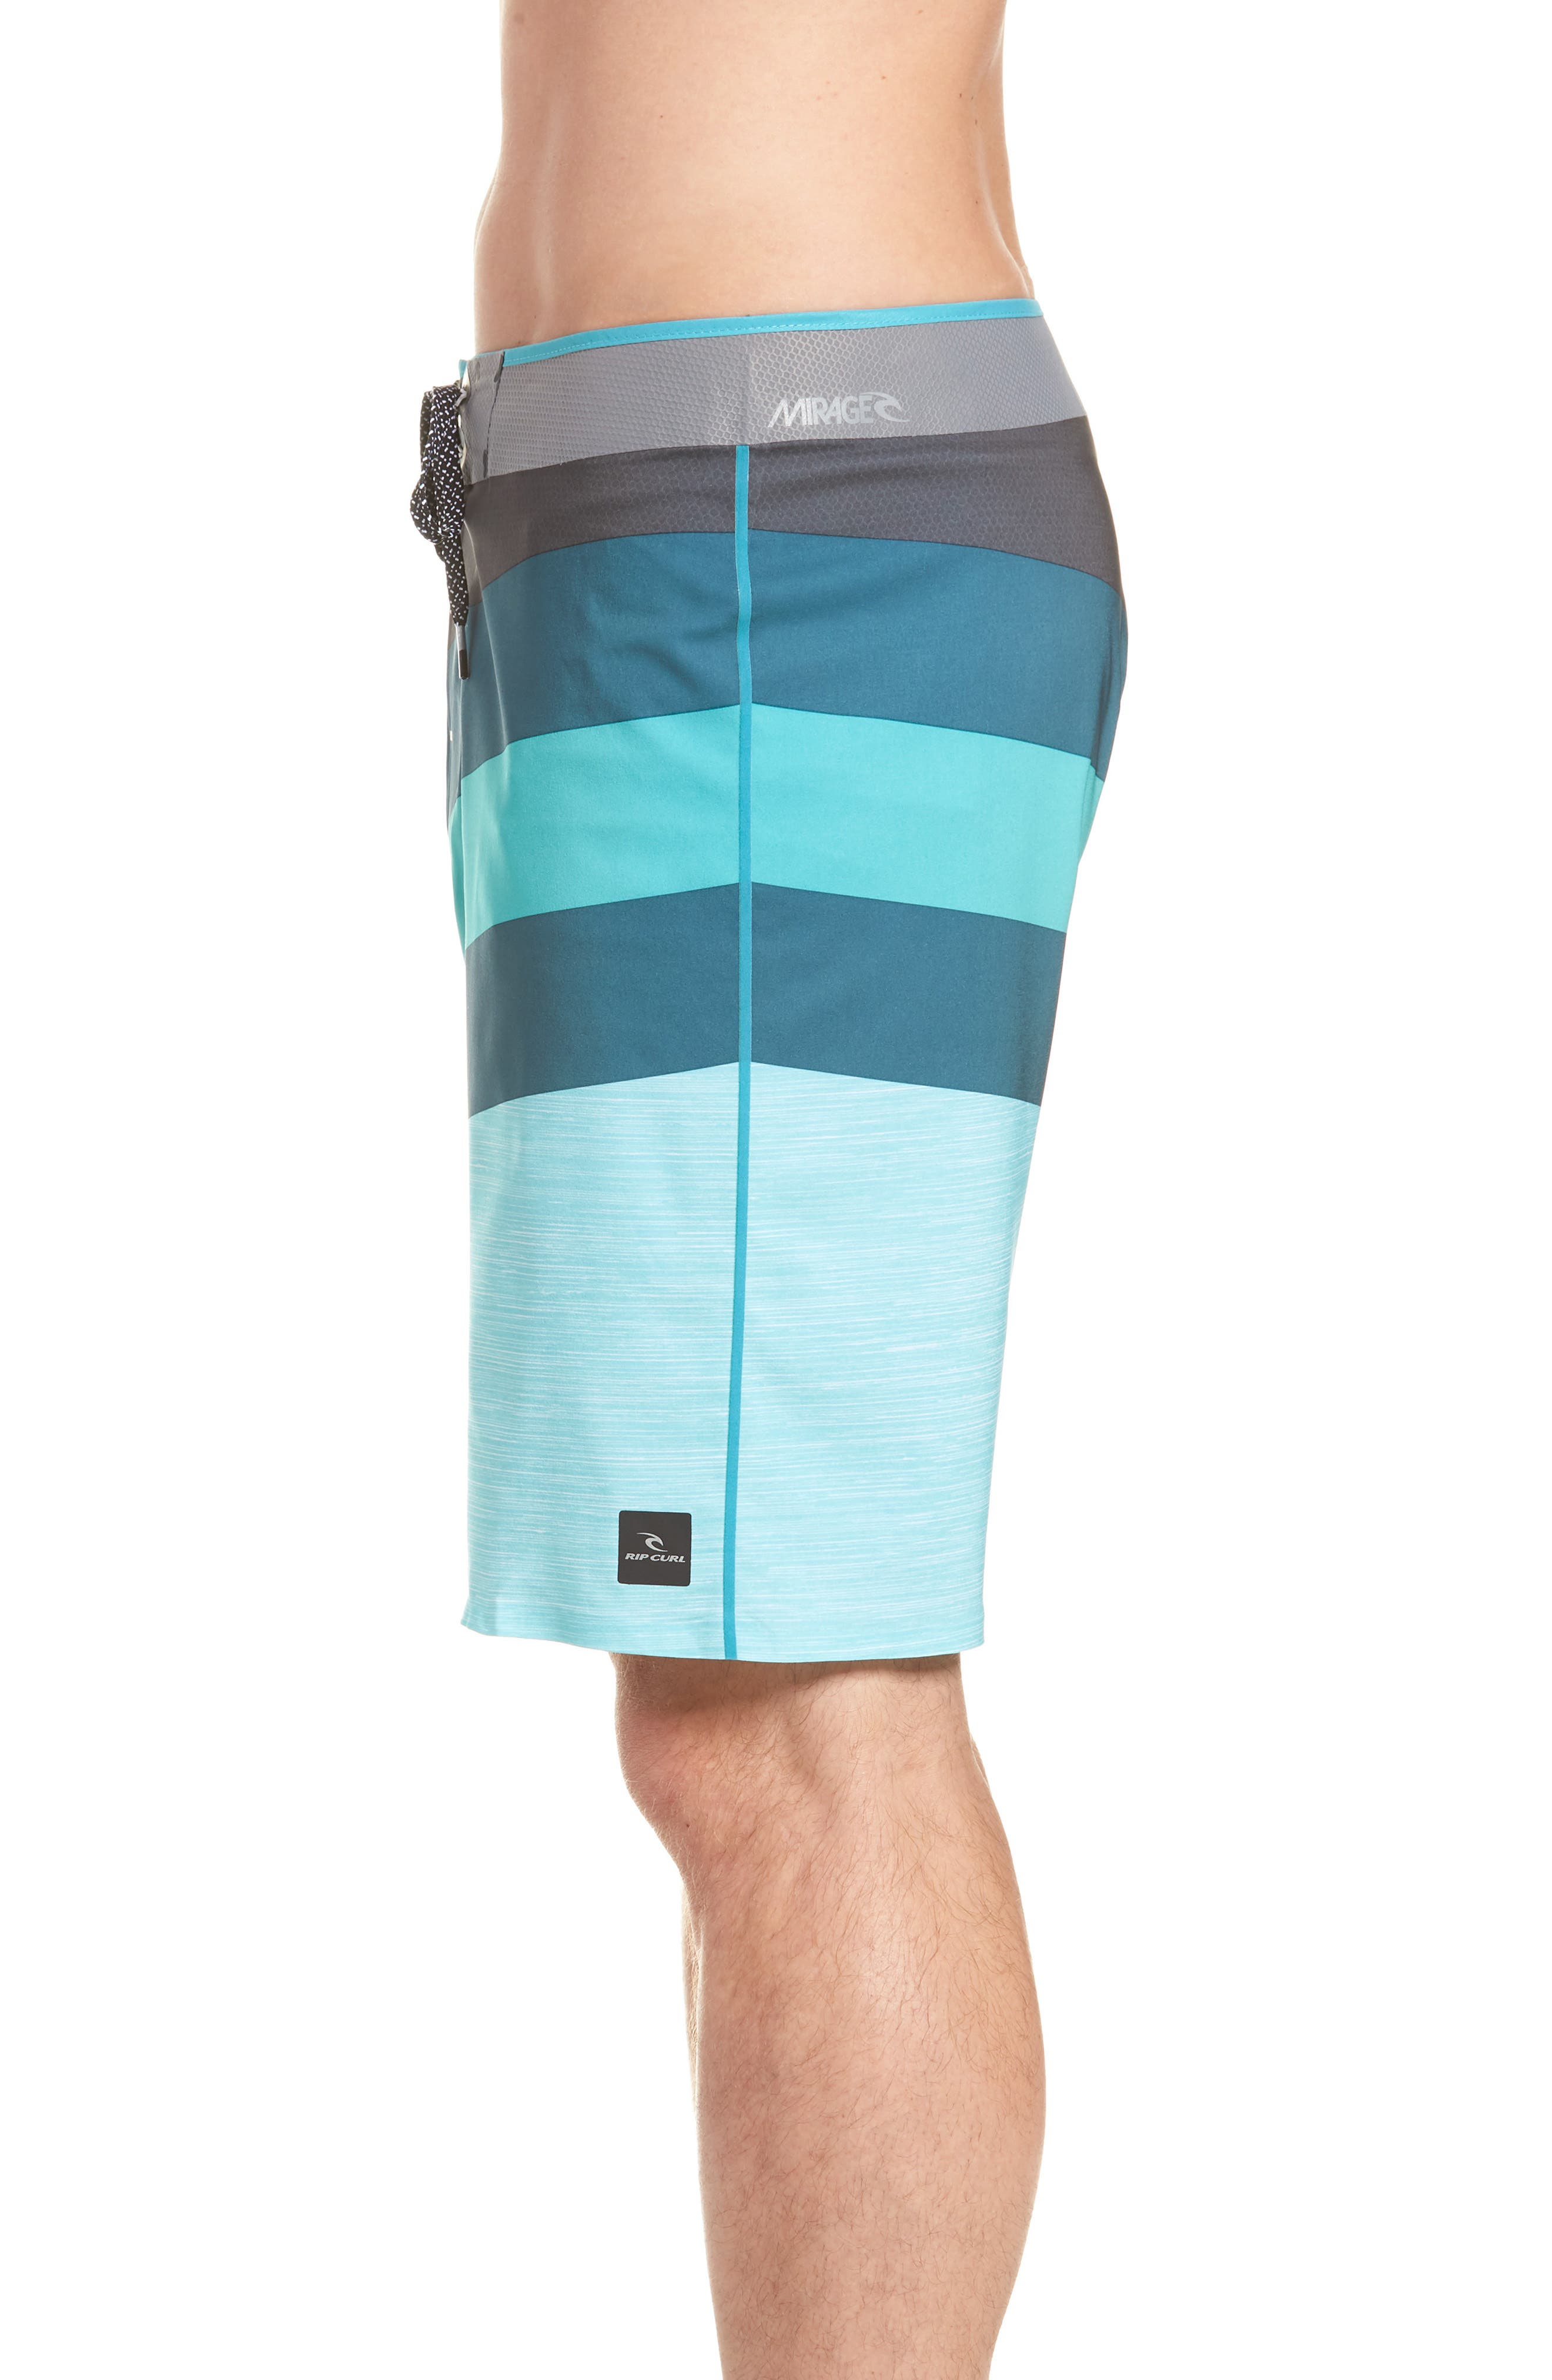 Mirage React Ultimate Board Short,                             Alternate thumbnail 3, color,                             Teal